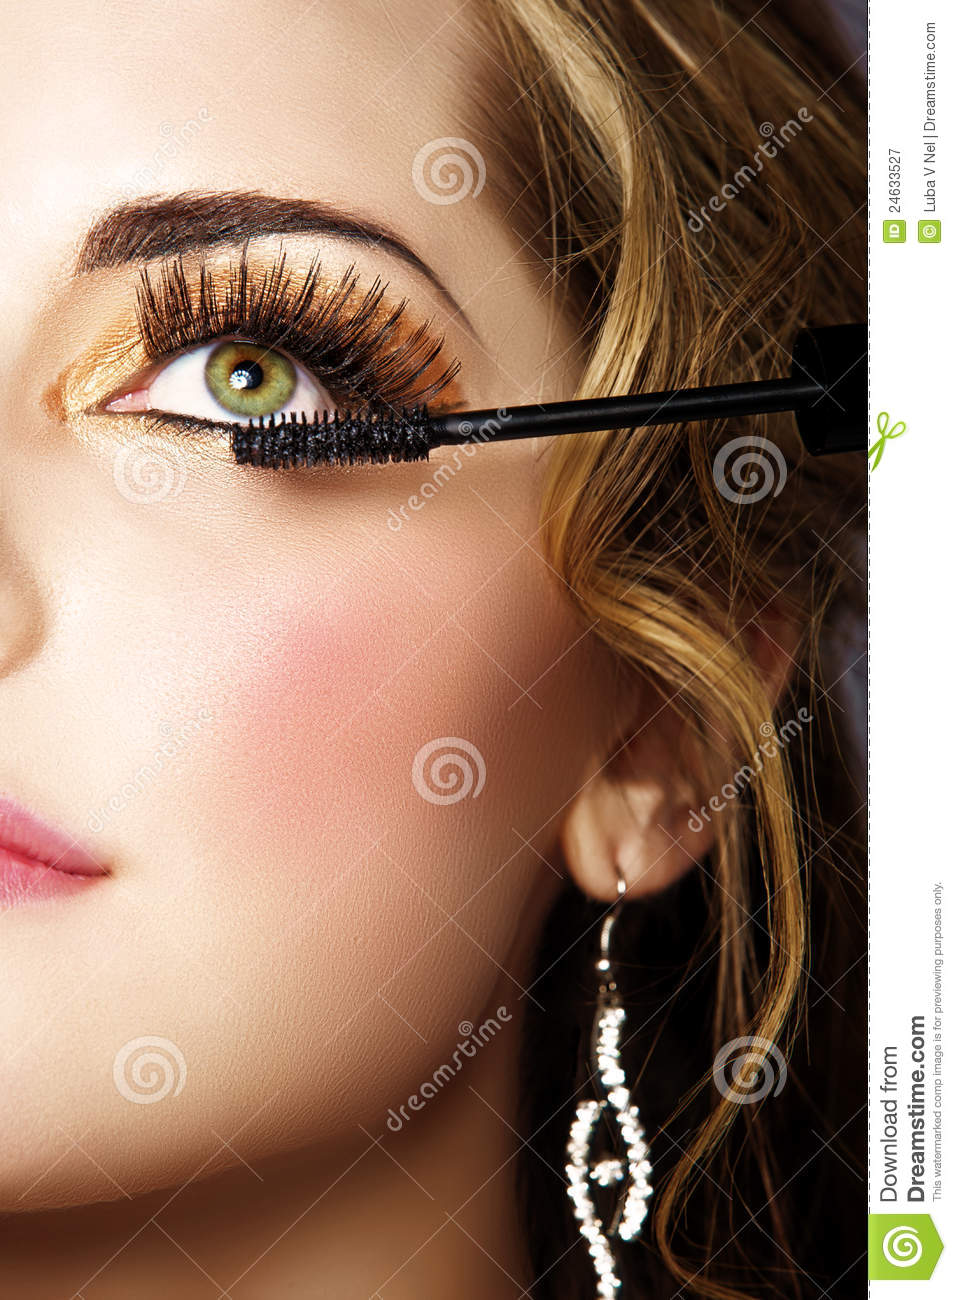 86d8ee32bc6 Portrait of beautiful woman with smoky gold eyeshadow and long false  eyelashes applying mascara with a wand